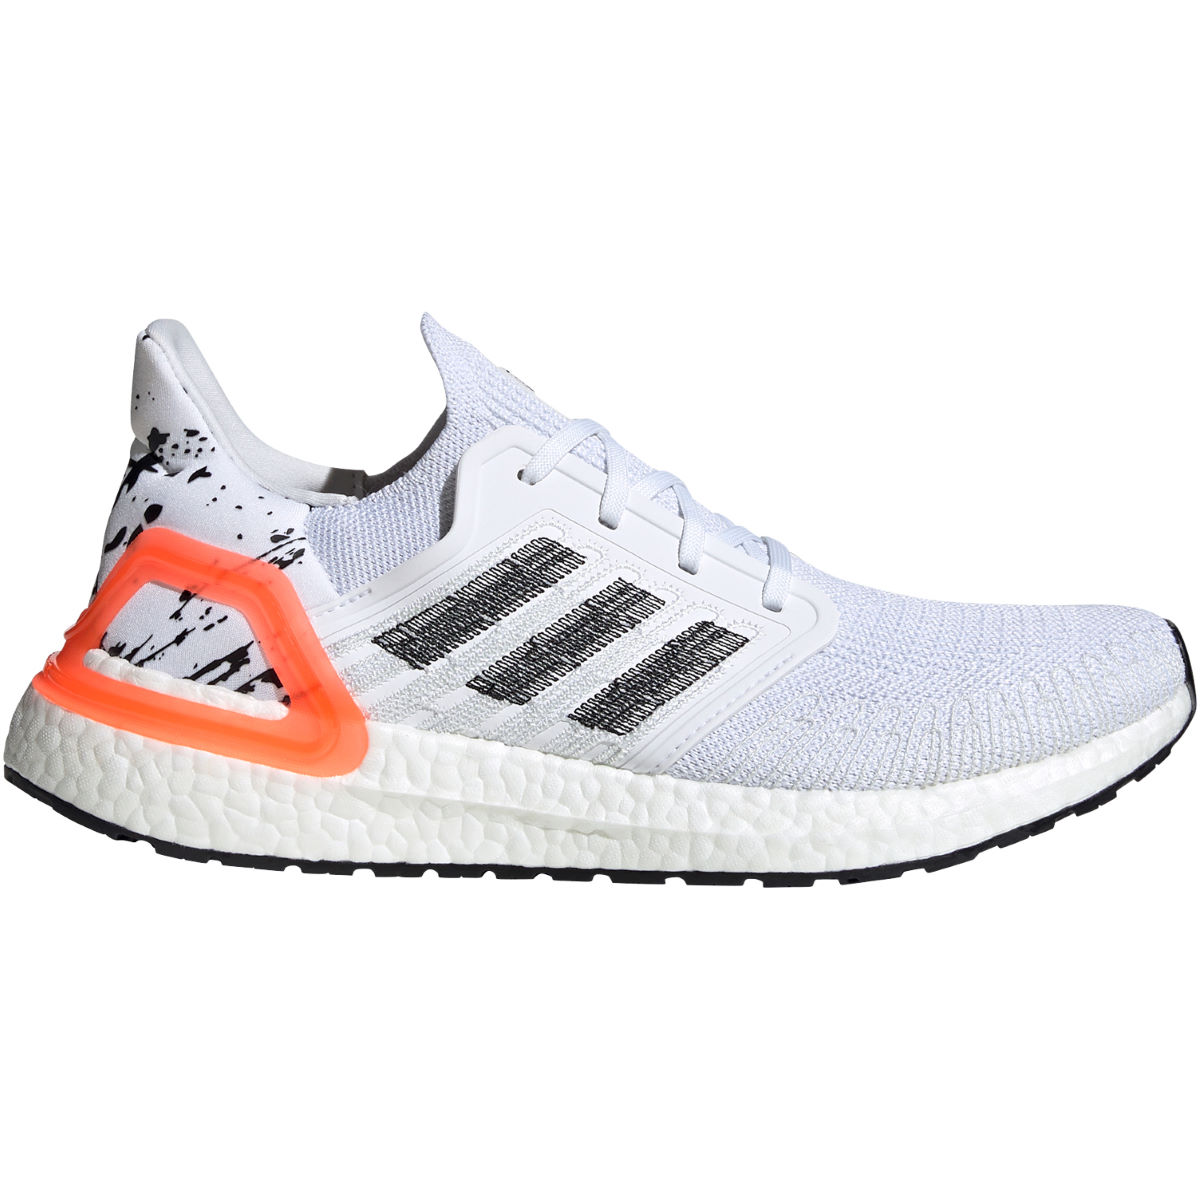 adidas Ultraboost 20 Running Shoes - UK 8 White/ Black/ Coral